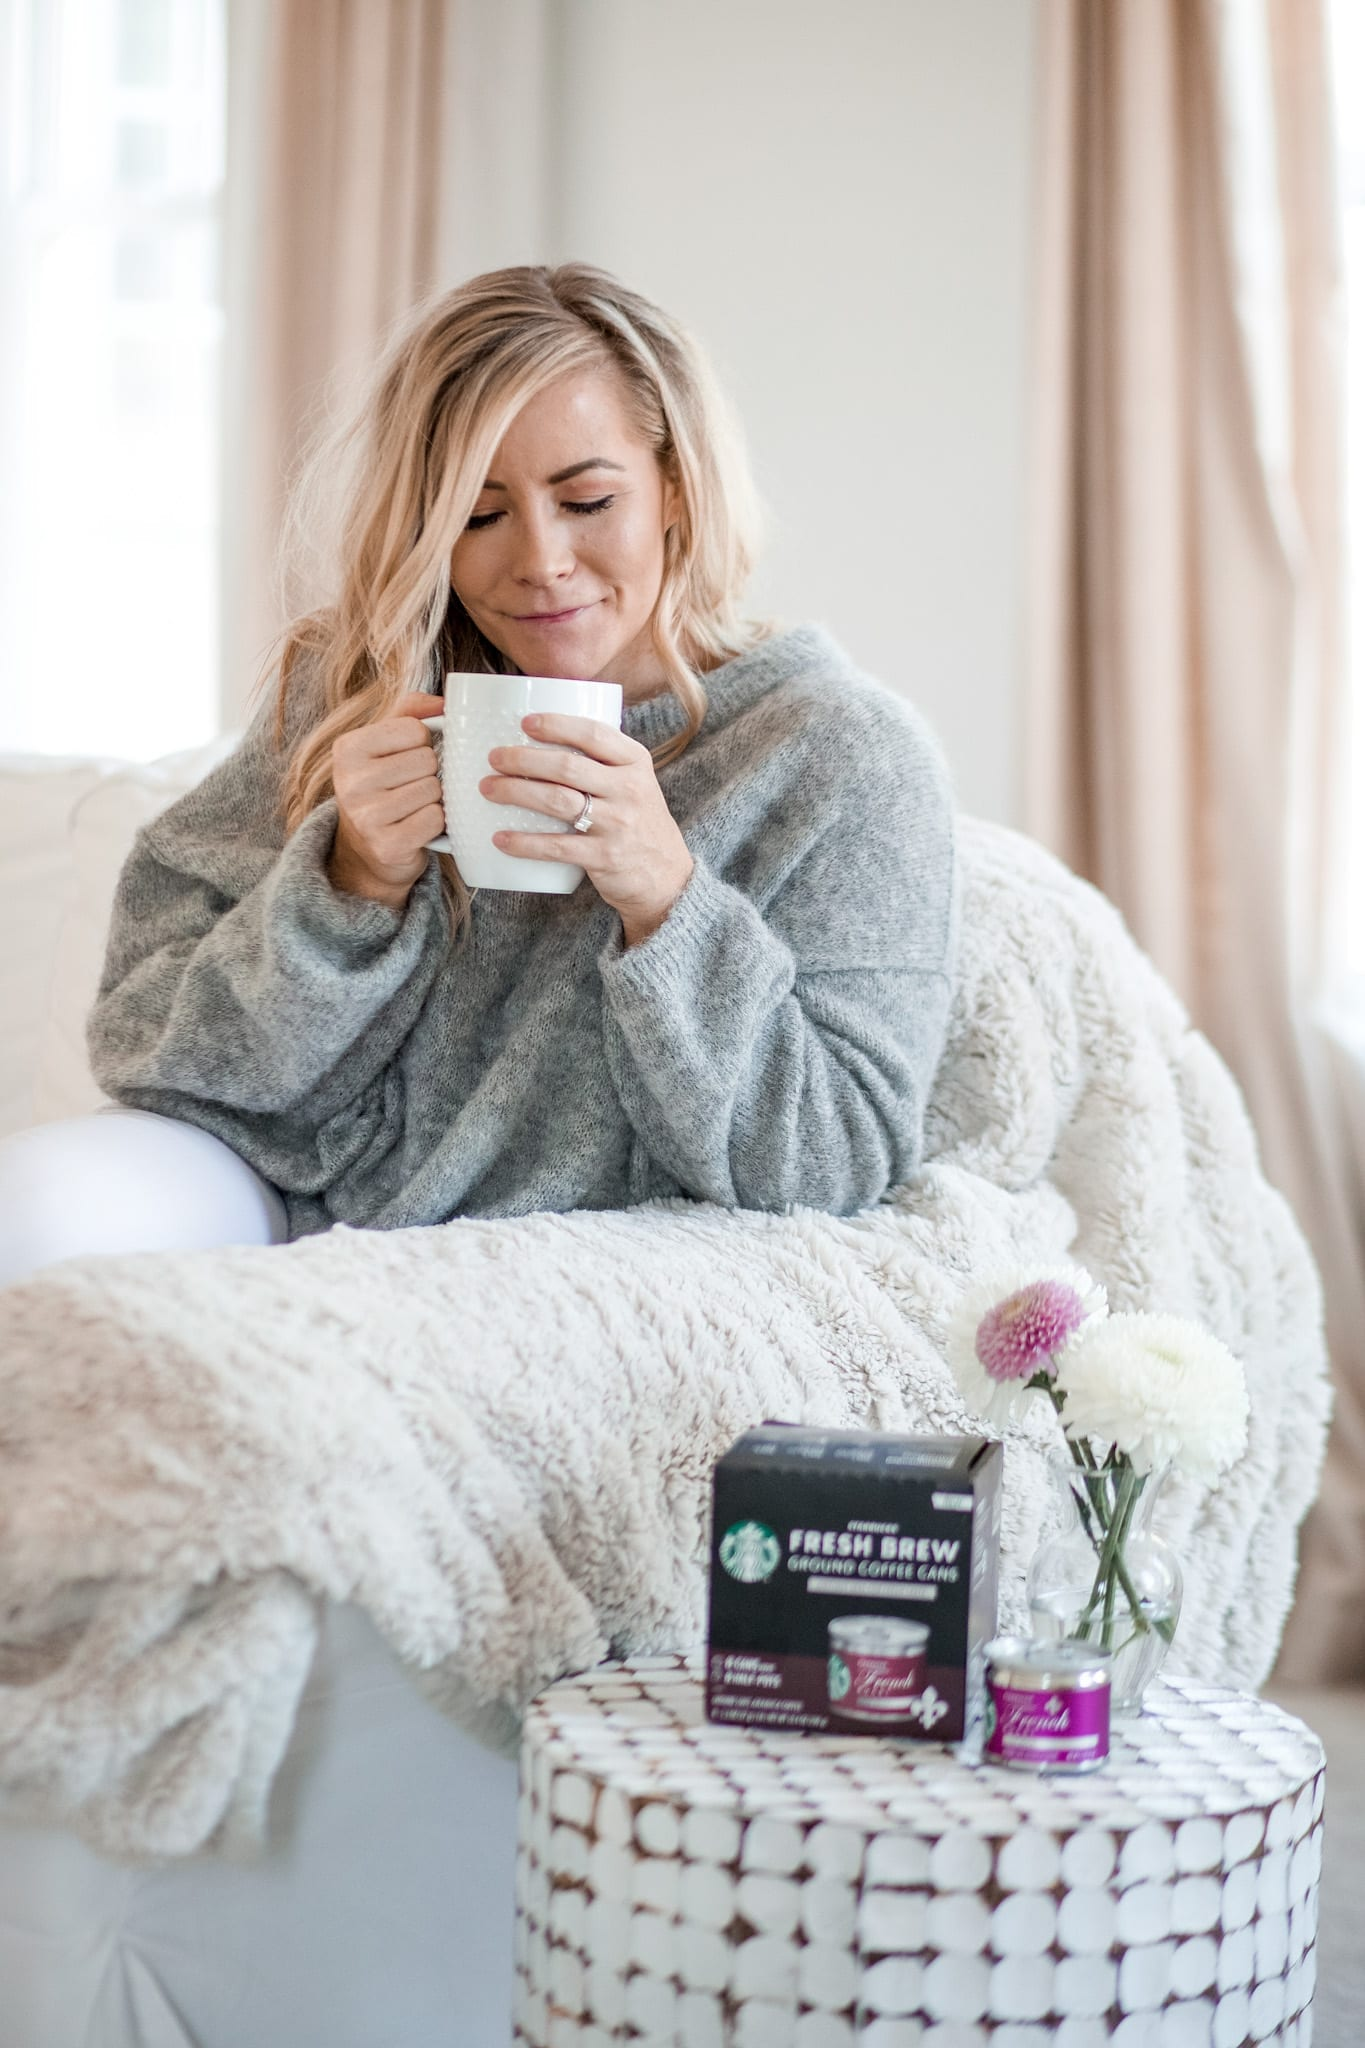 self care for busy mom- Starbucks® Fresh Brew Cans- Me Time for Mom